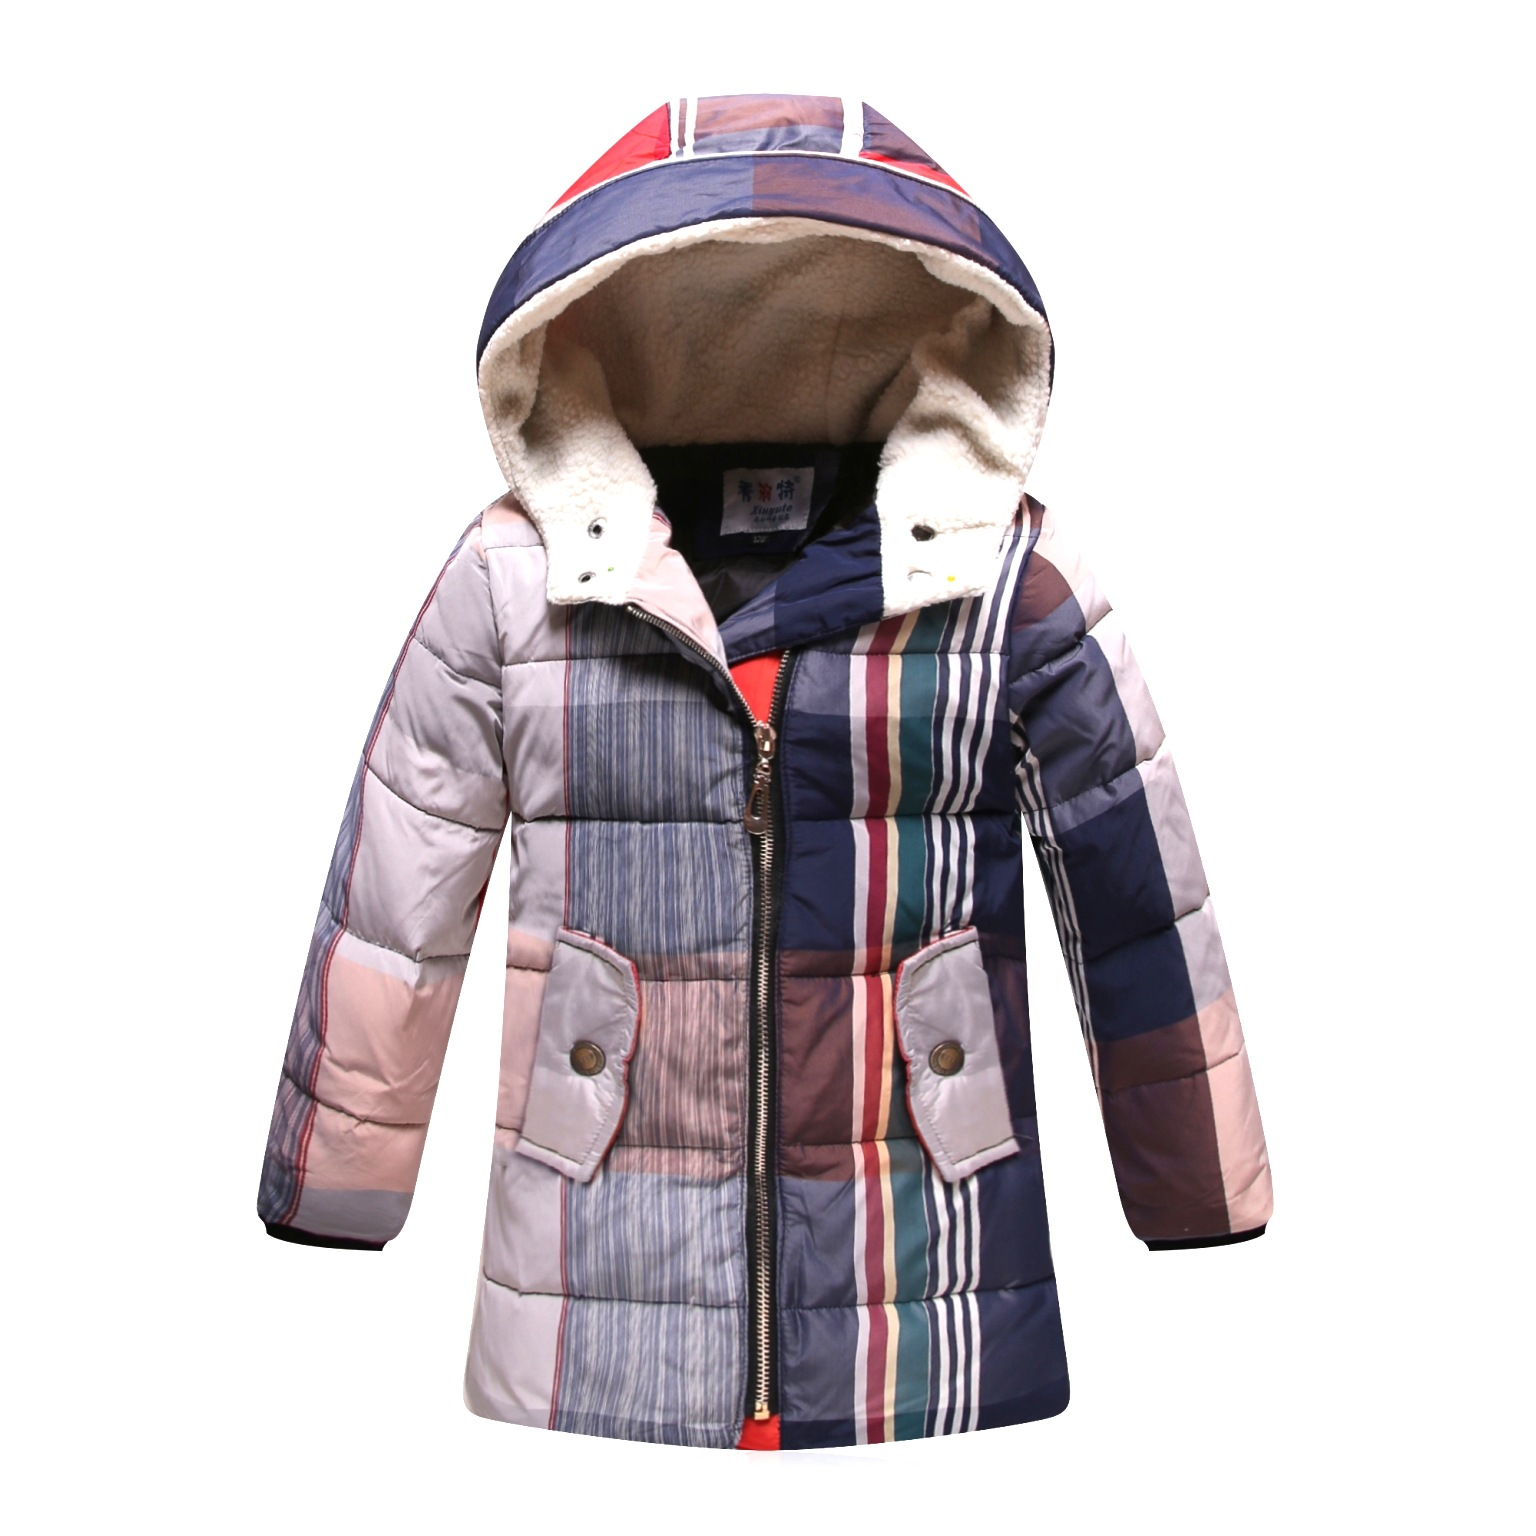 New Childrenu0026#39;s Jackets 2015 Boys Winter Jacket Thick Hooded Parkas Warm Boys Winter Coat Down ...